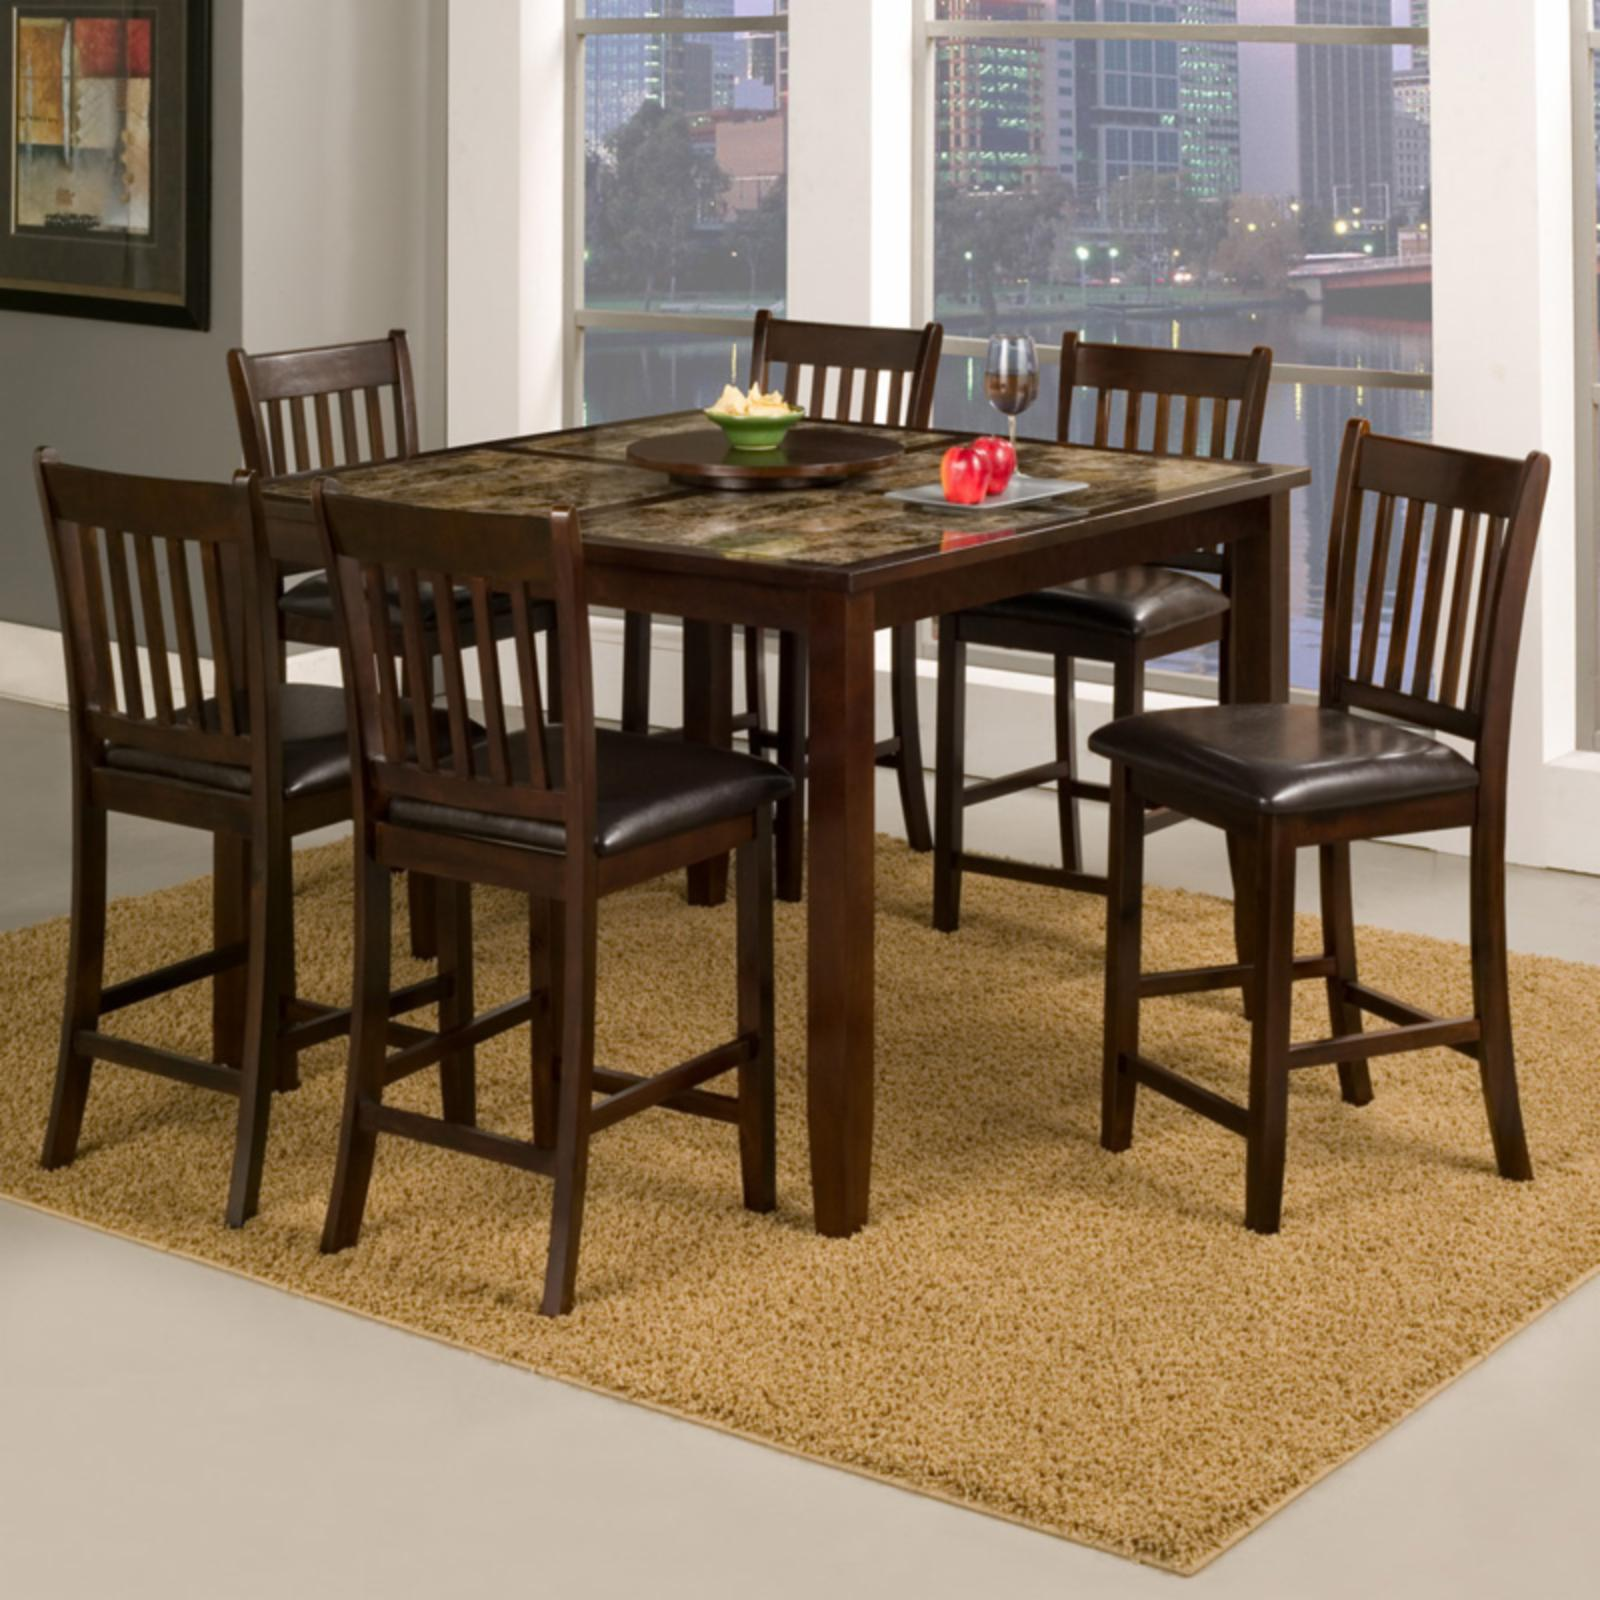 Alpine Furniture Capitola 7 Piece Counter Height Pub Tabl...